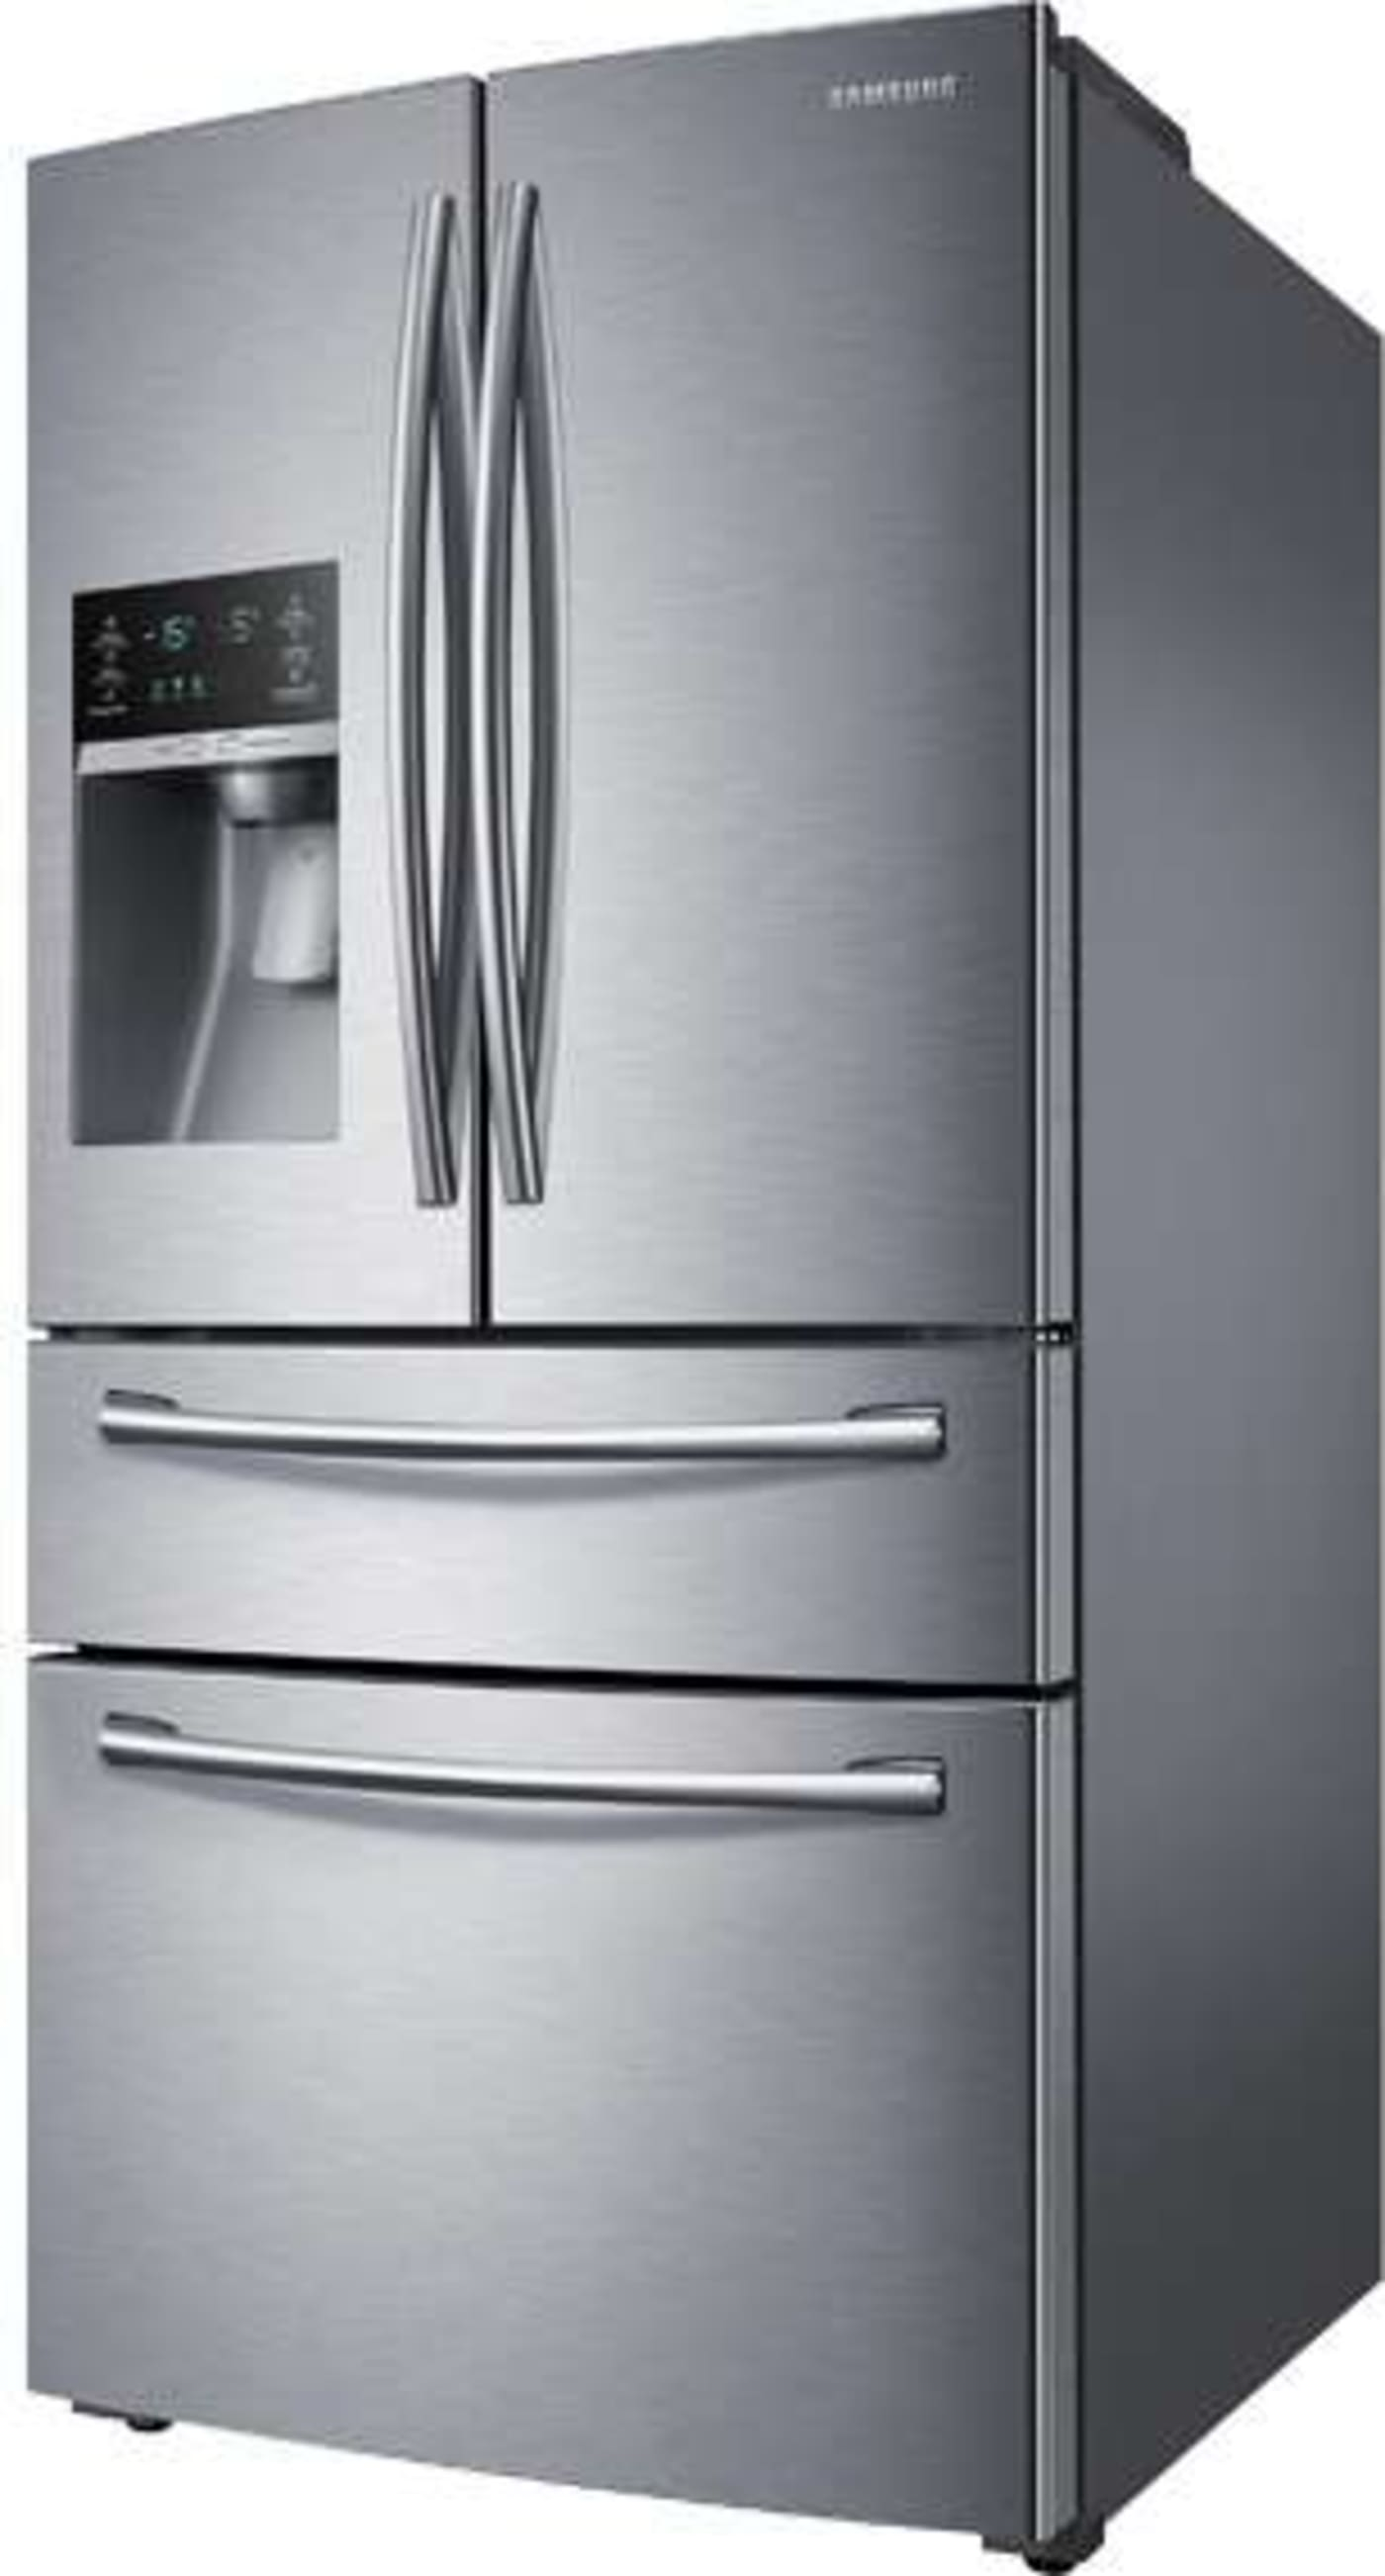 Samsung Rf28hmedbsr 36 Quot 28 0 Cu Ft Stainless Steel